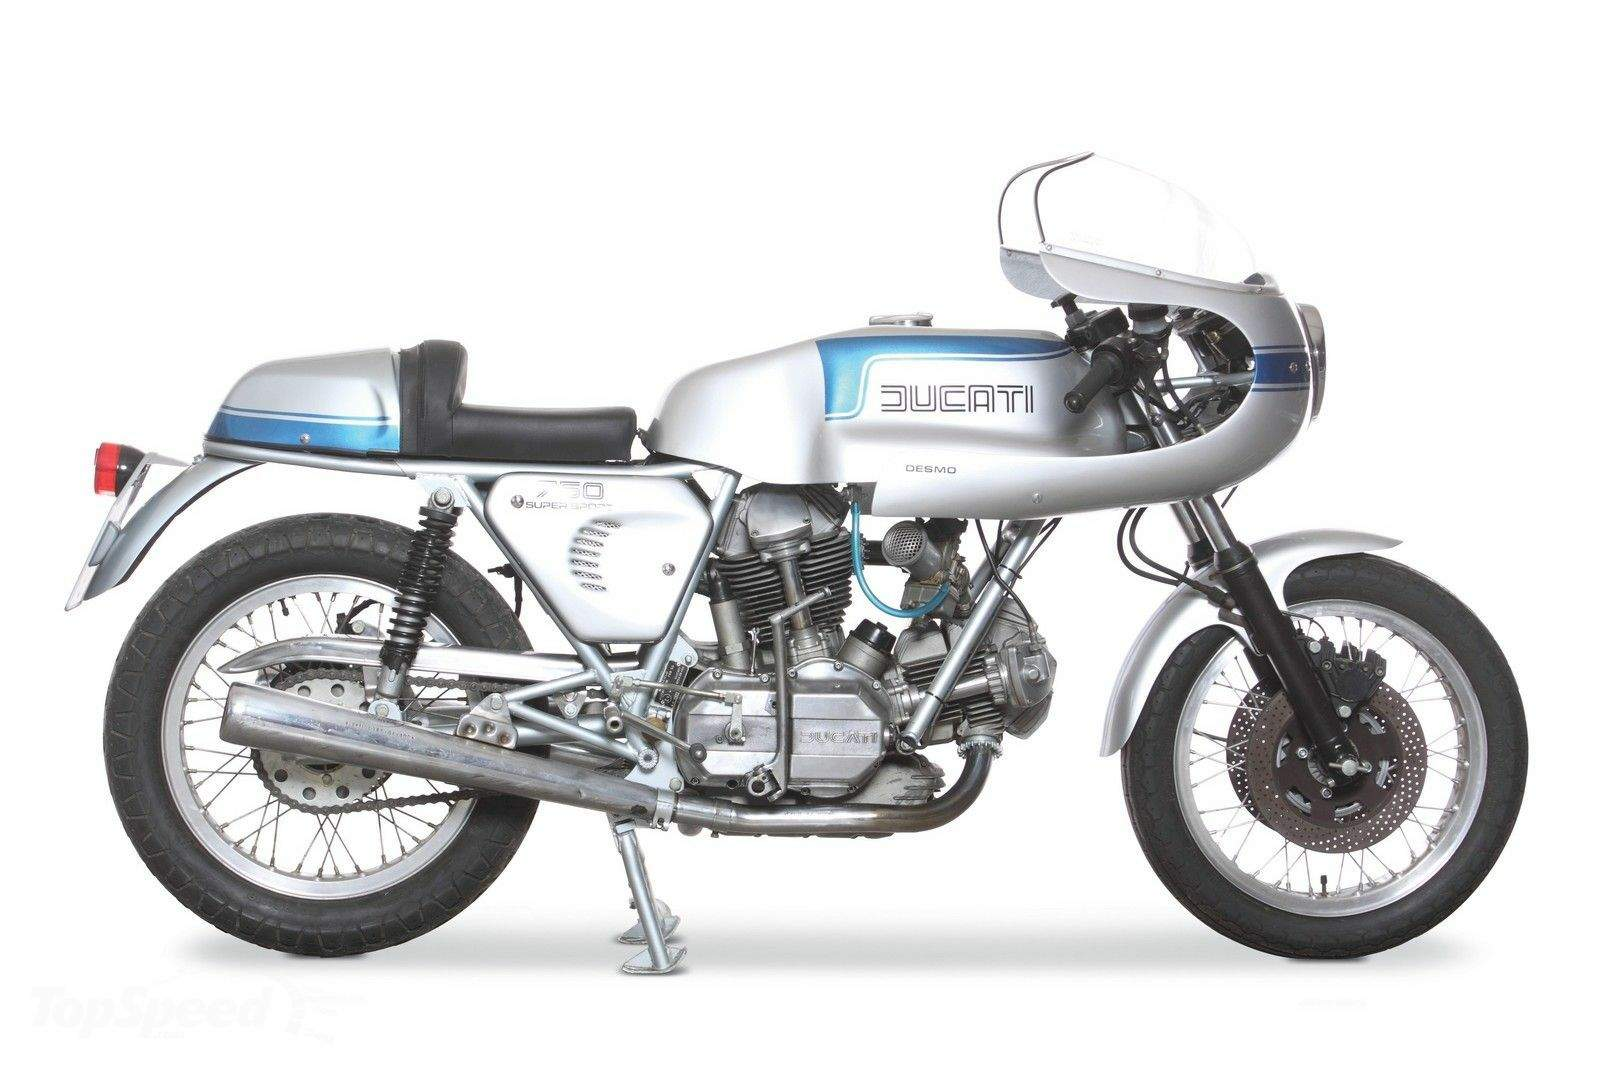 Ducati 750 SS images #9957